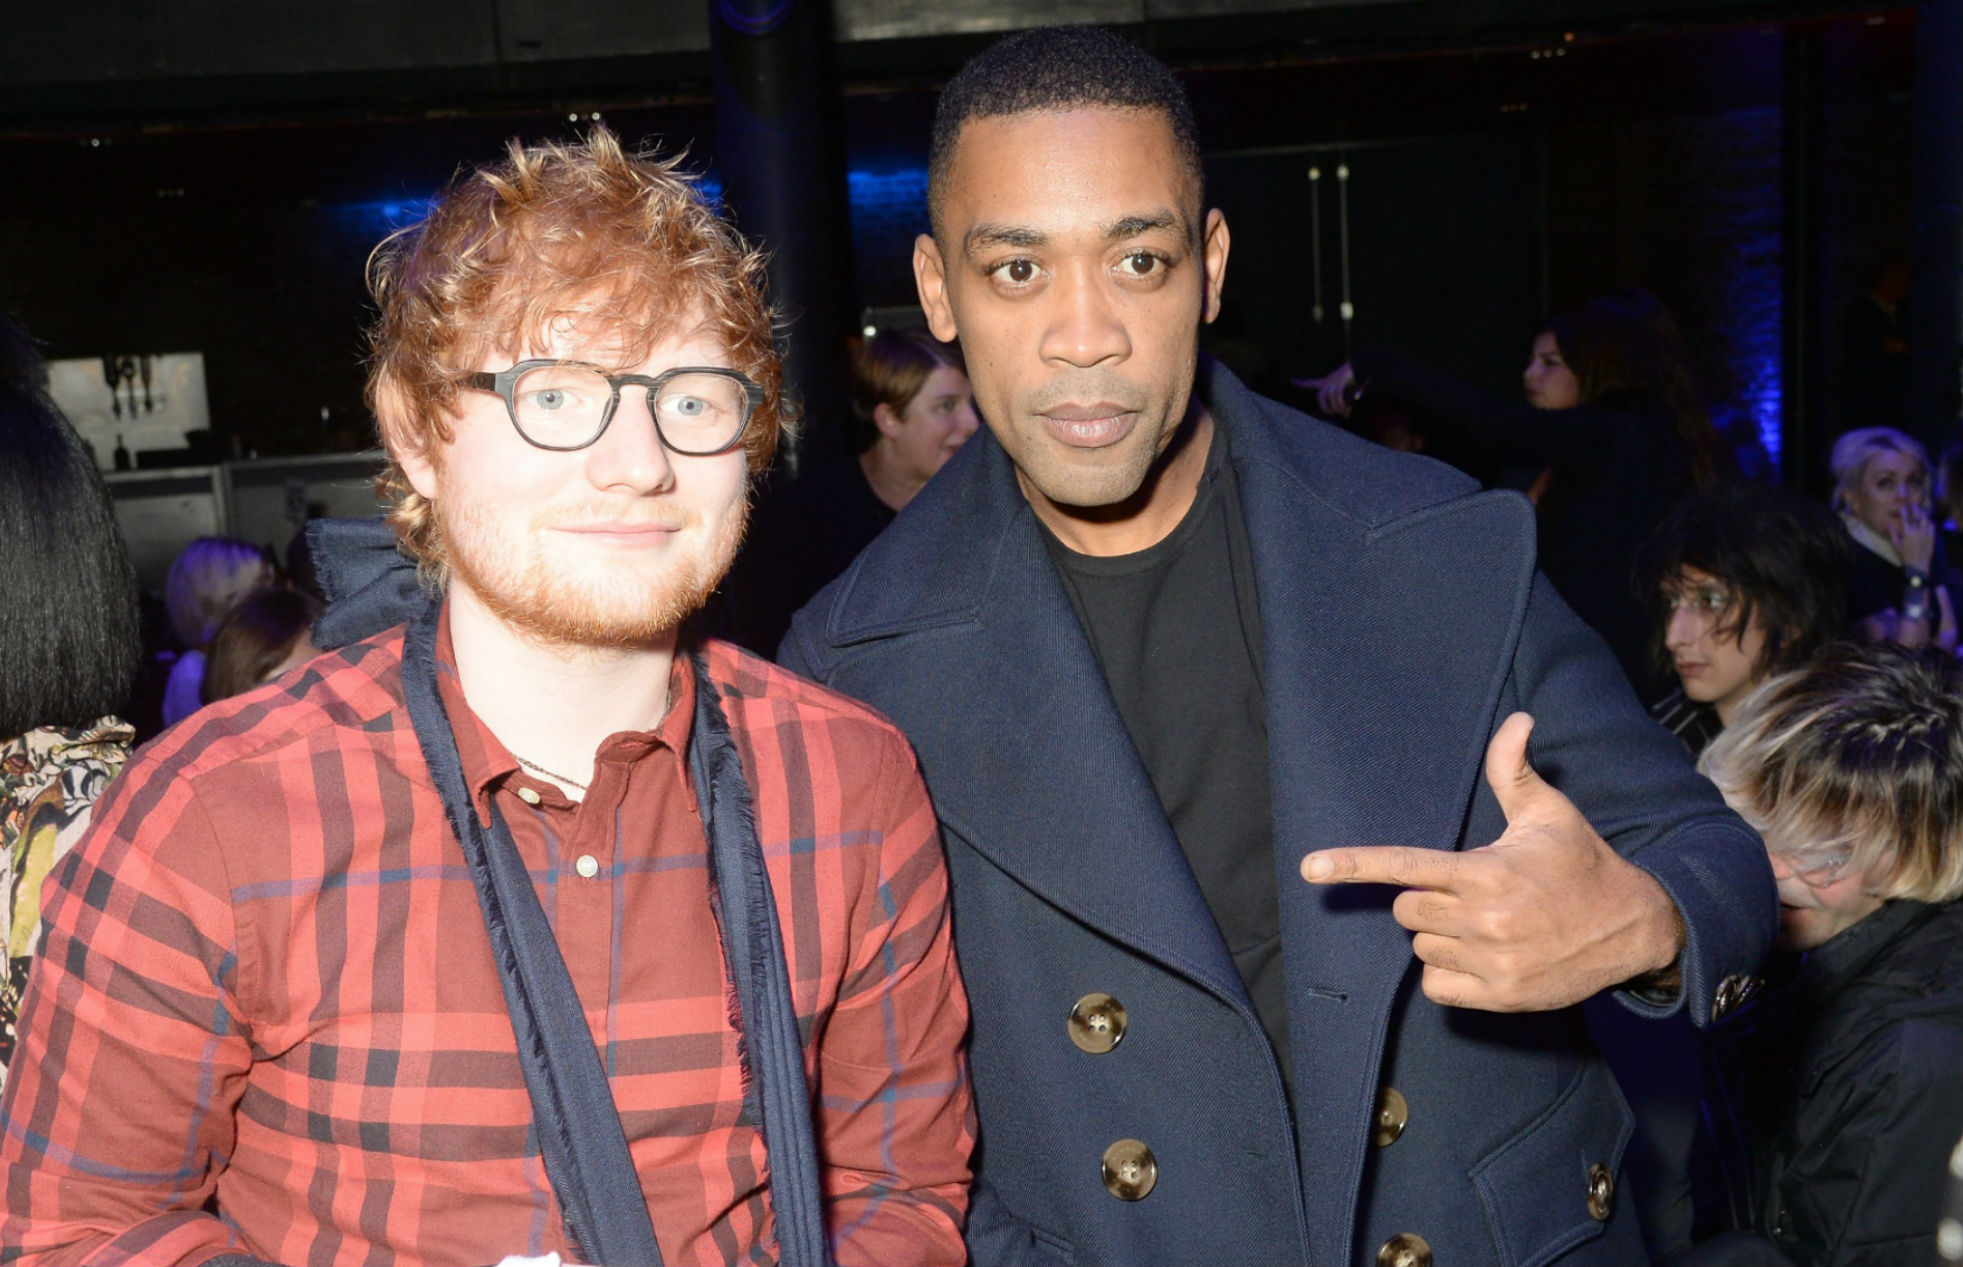 Ed Sheeran Responds To Wiley S Comments That He S A Culture